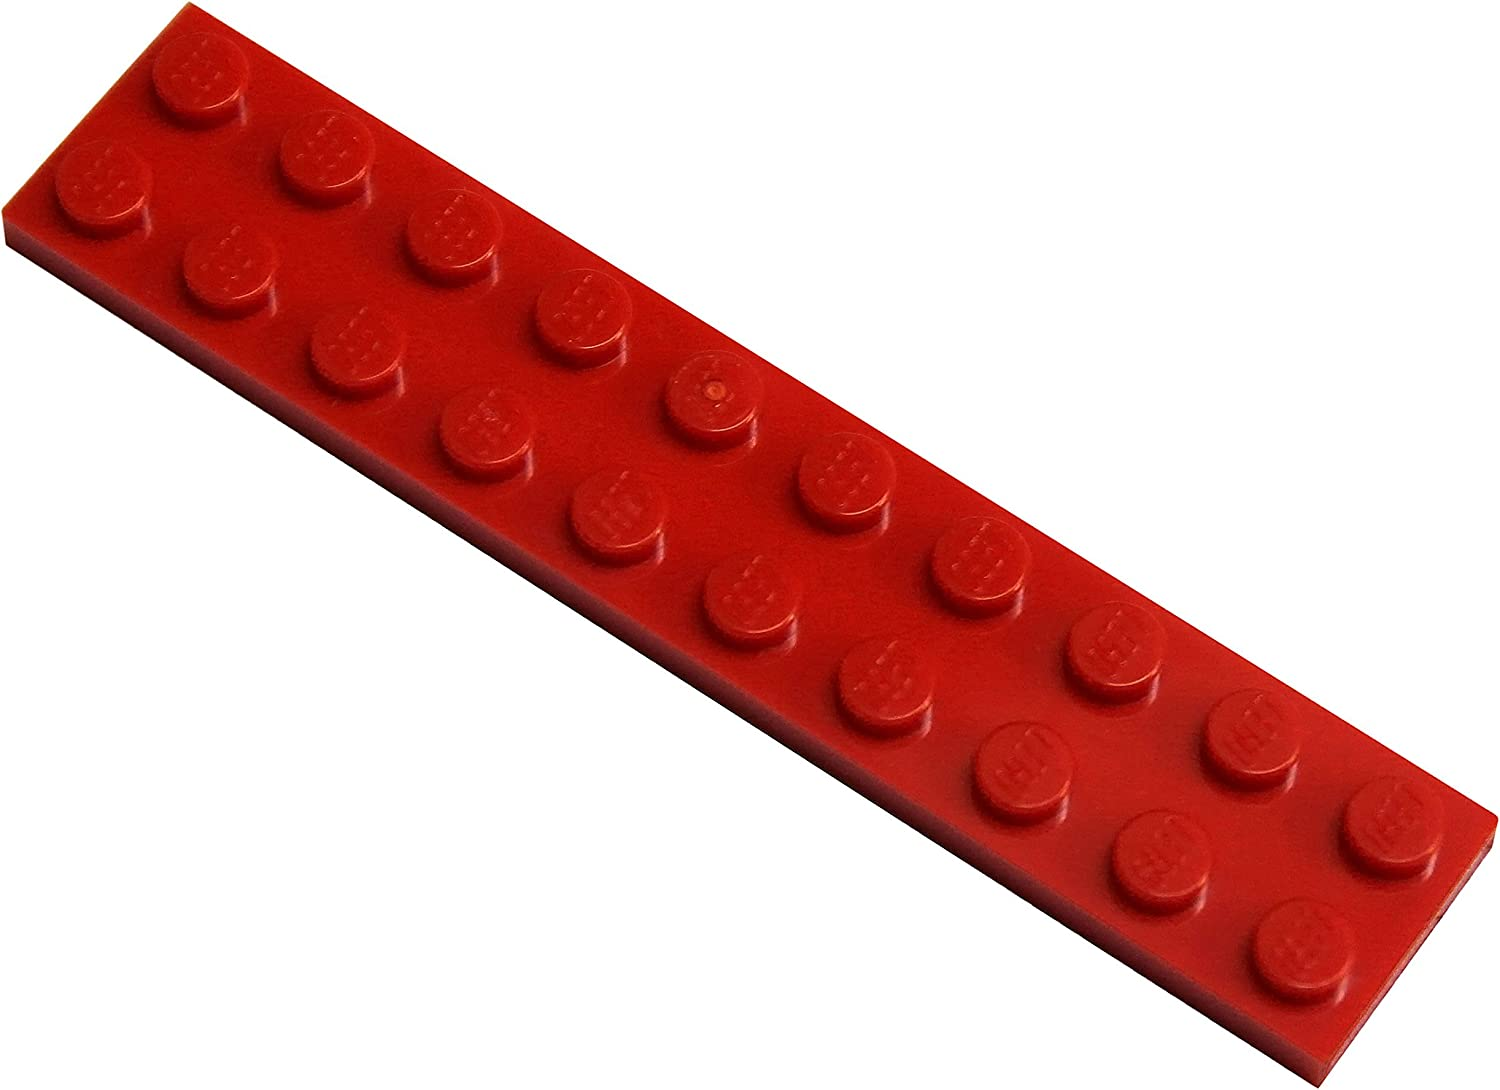 LEGO Parts and Pieces: Red (Bright Red) 2x10 Plate x20